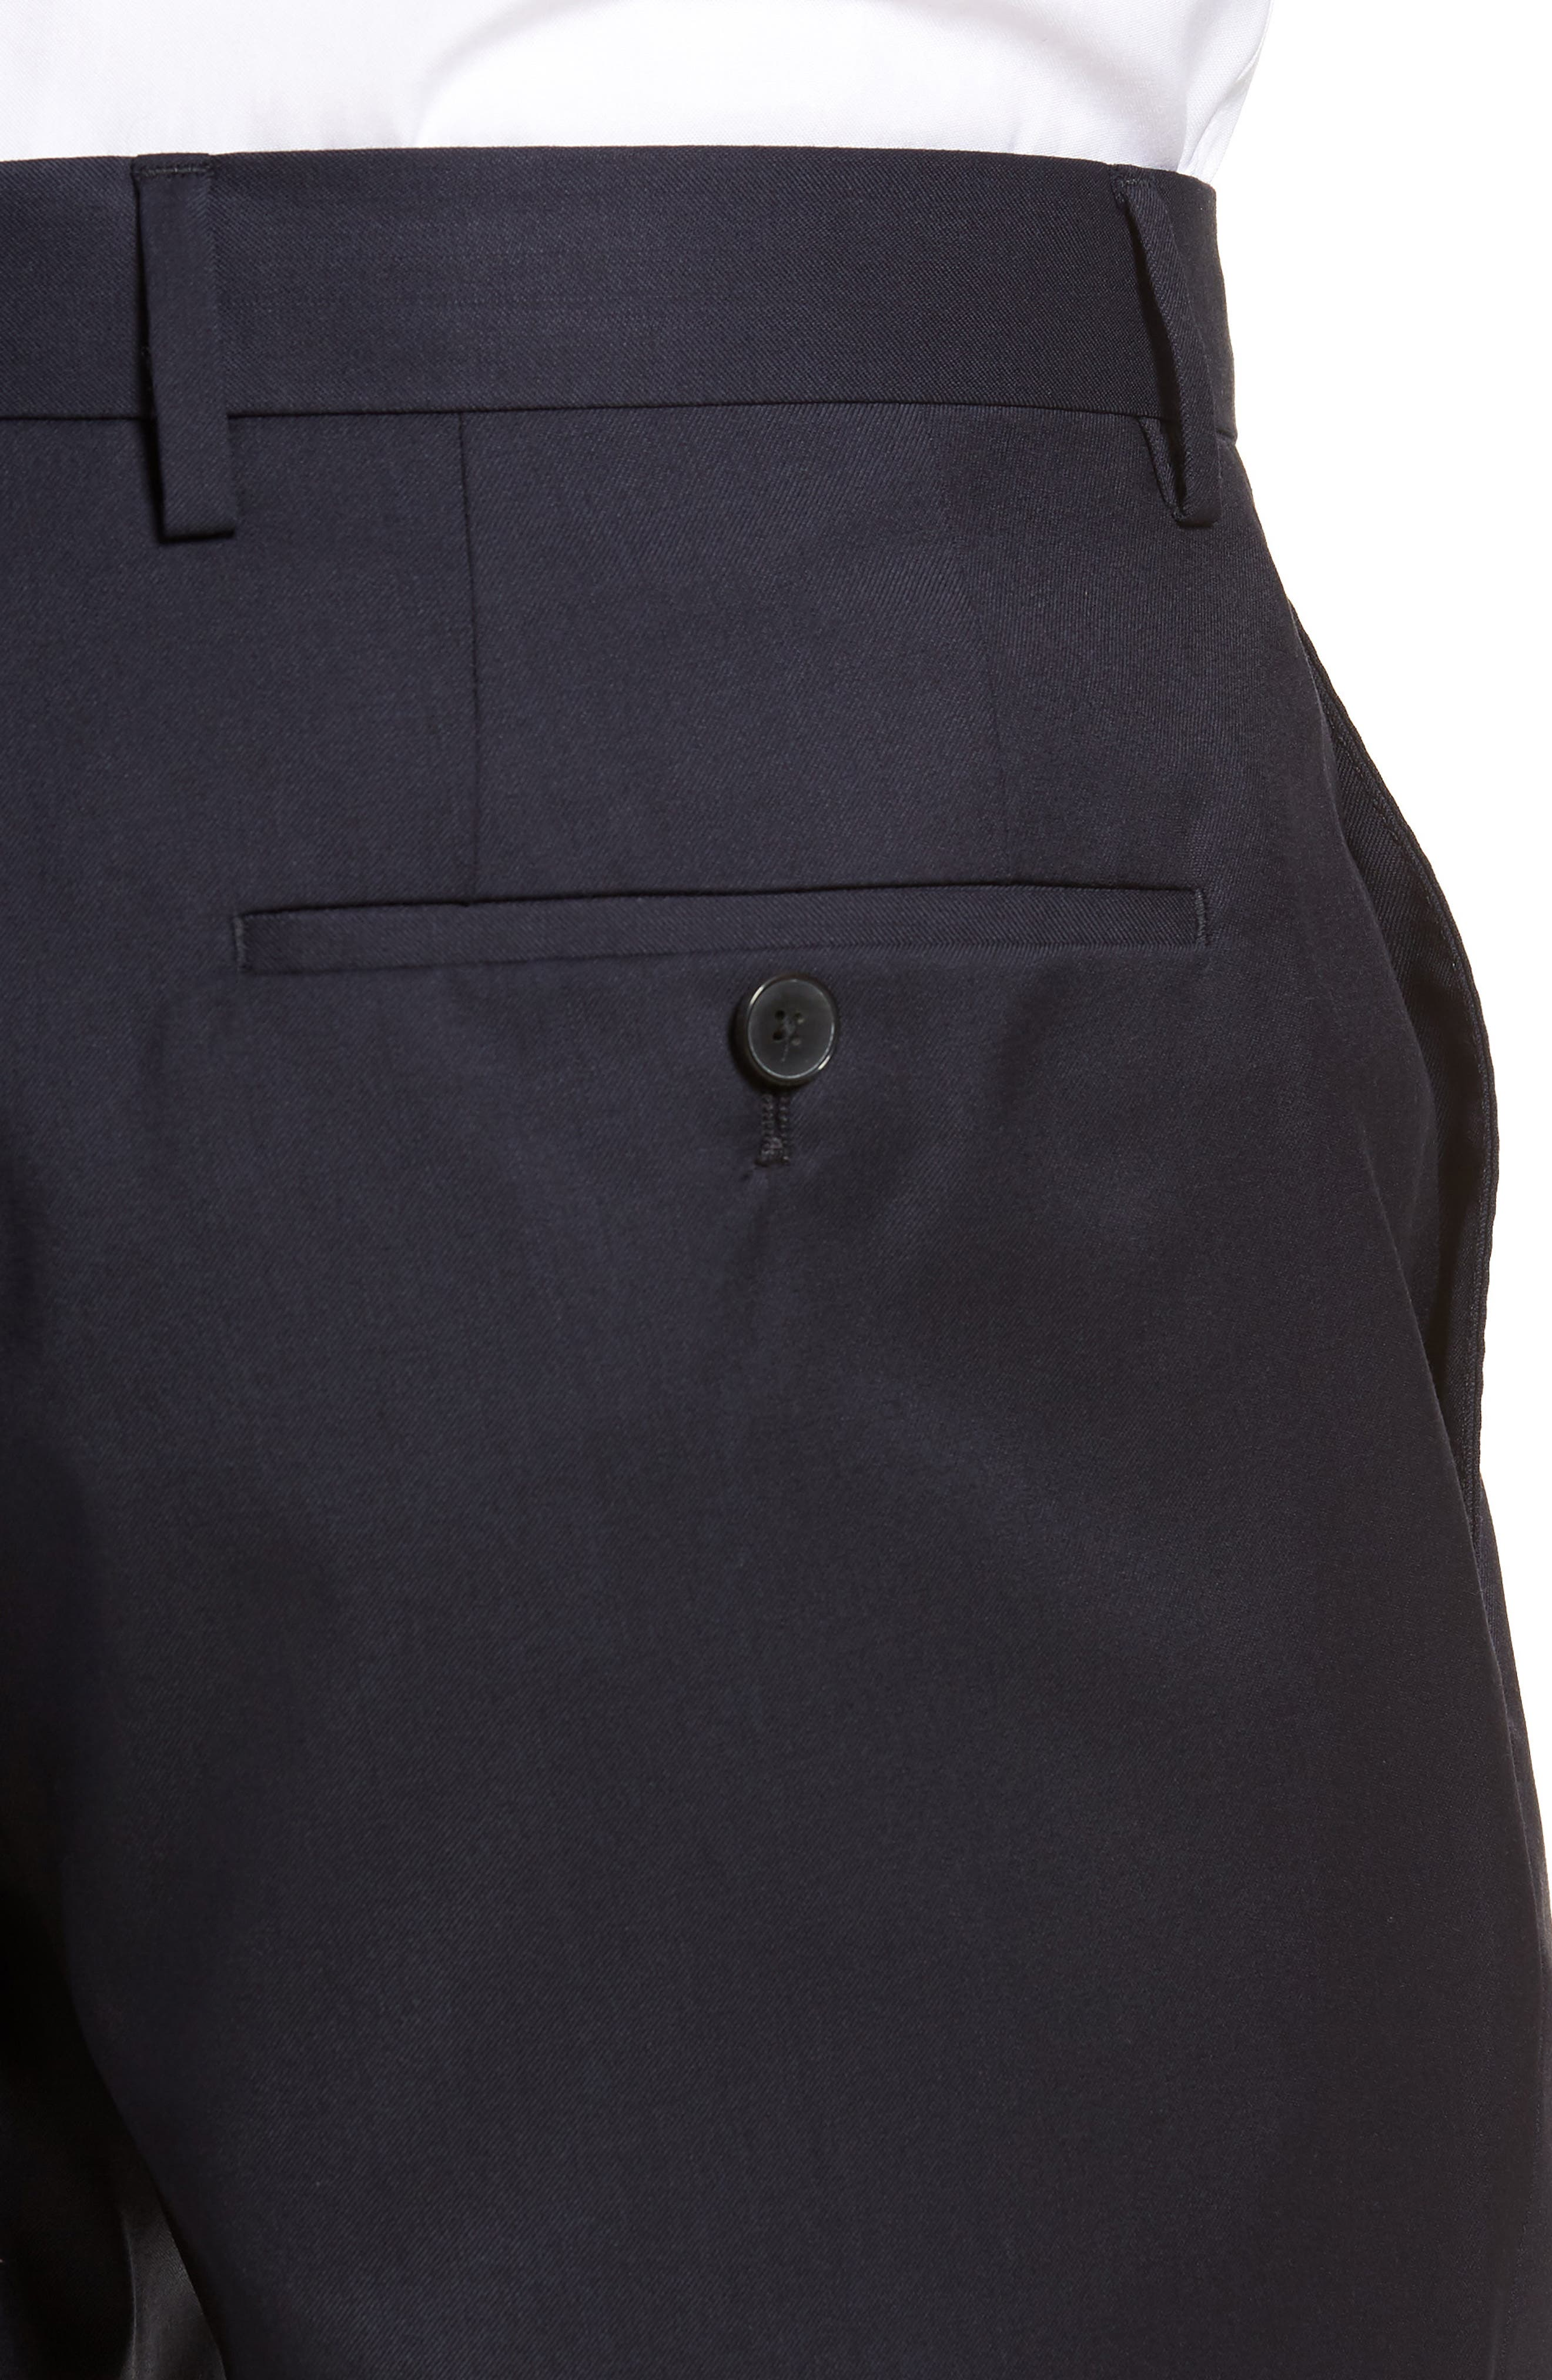 Gibson CYL Flat Front Solid Wool Trousers,                             Alternate thumbnail 4, color,                             Dark Blue